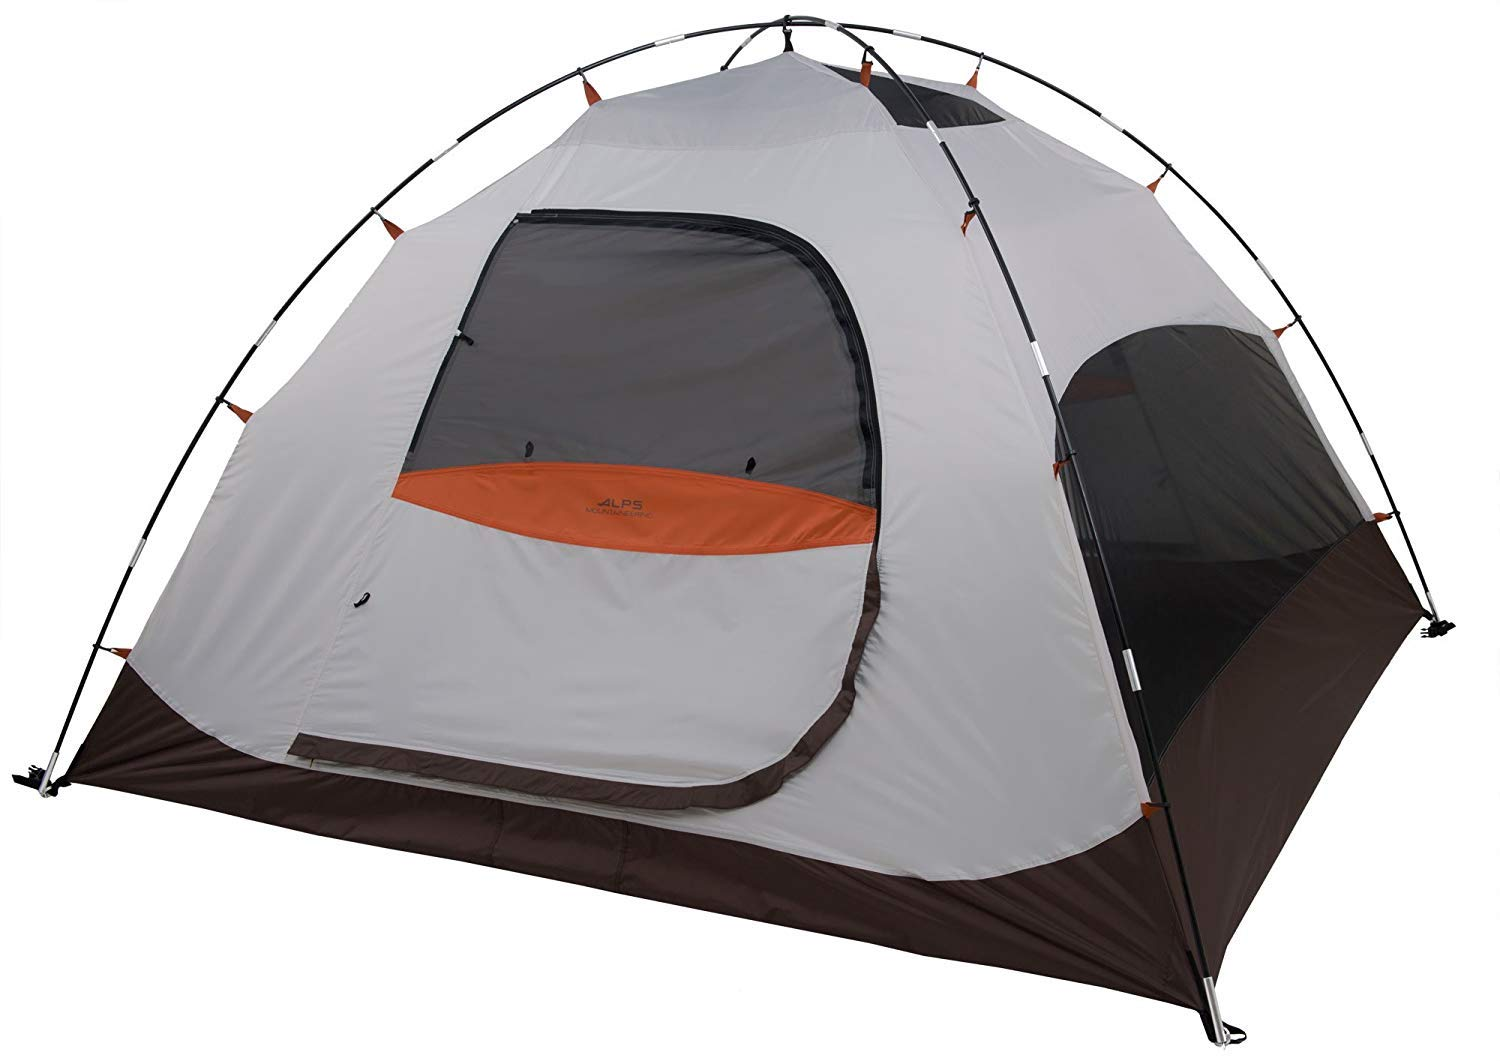 [ALPS Mountaineering ] [ALPS Mountaineering 4人用テント Meramac 4-Person Tent] (並行輸入品) One Size One Color B07H83K7ZW